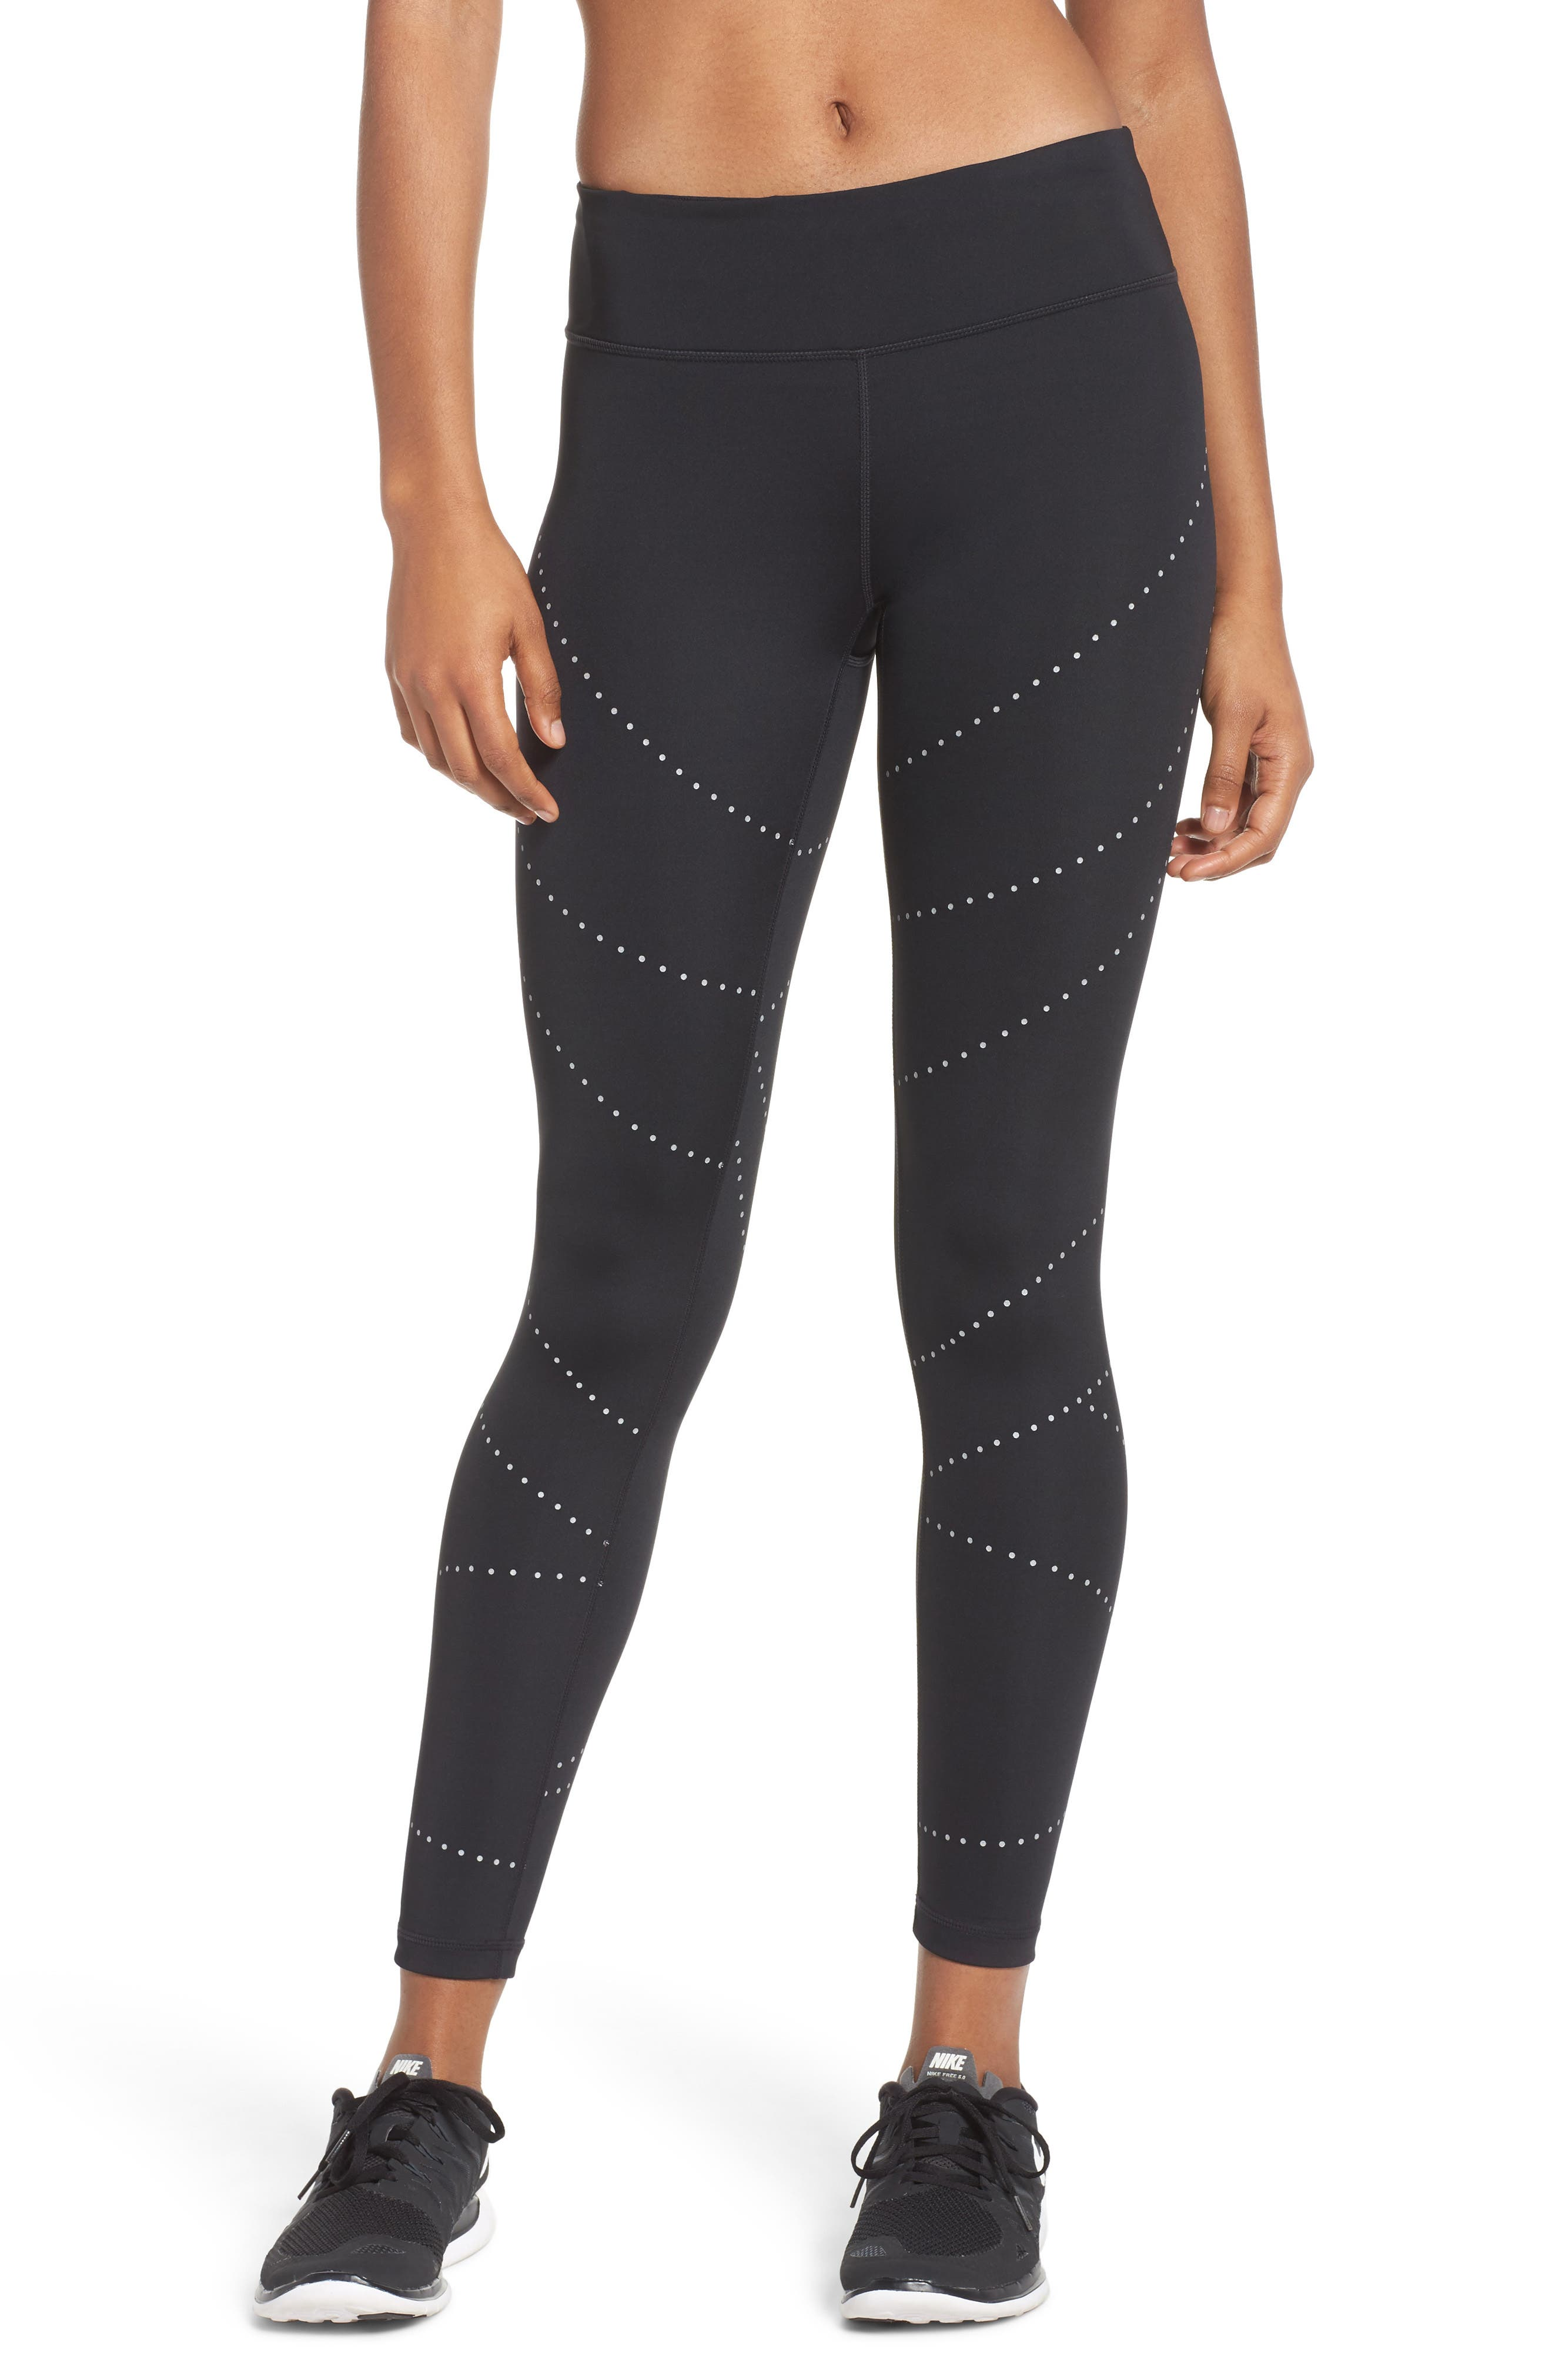 Aero Reflect Run Ankle Leggings,                             Main thumbnail 1, color,                             001